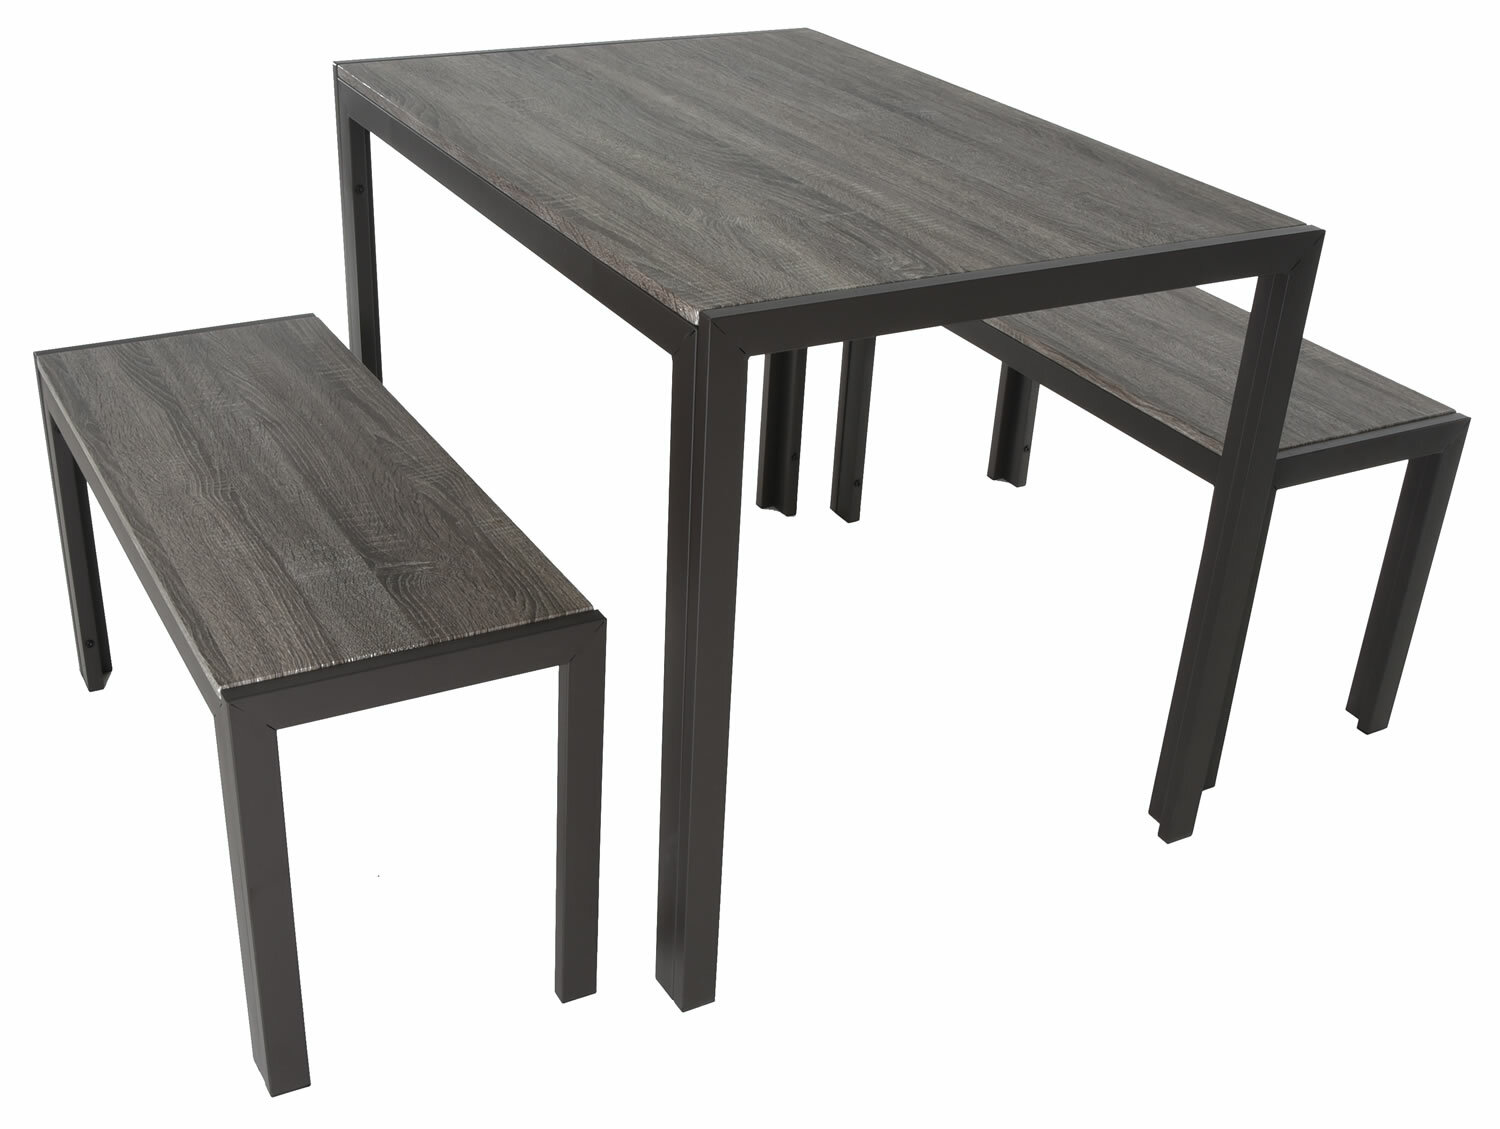 Strange Maloney 3 Piece Breakfast Nook Dining Set Gmtry Best Dining Table And Chair Ideas Images Gmtryco